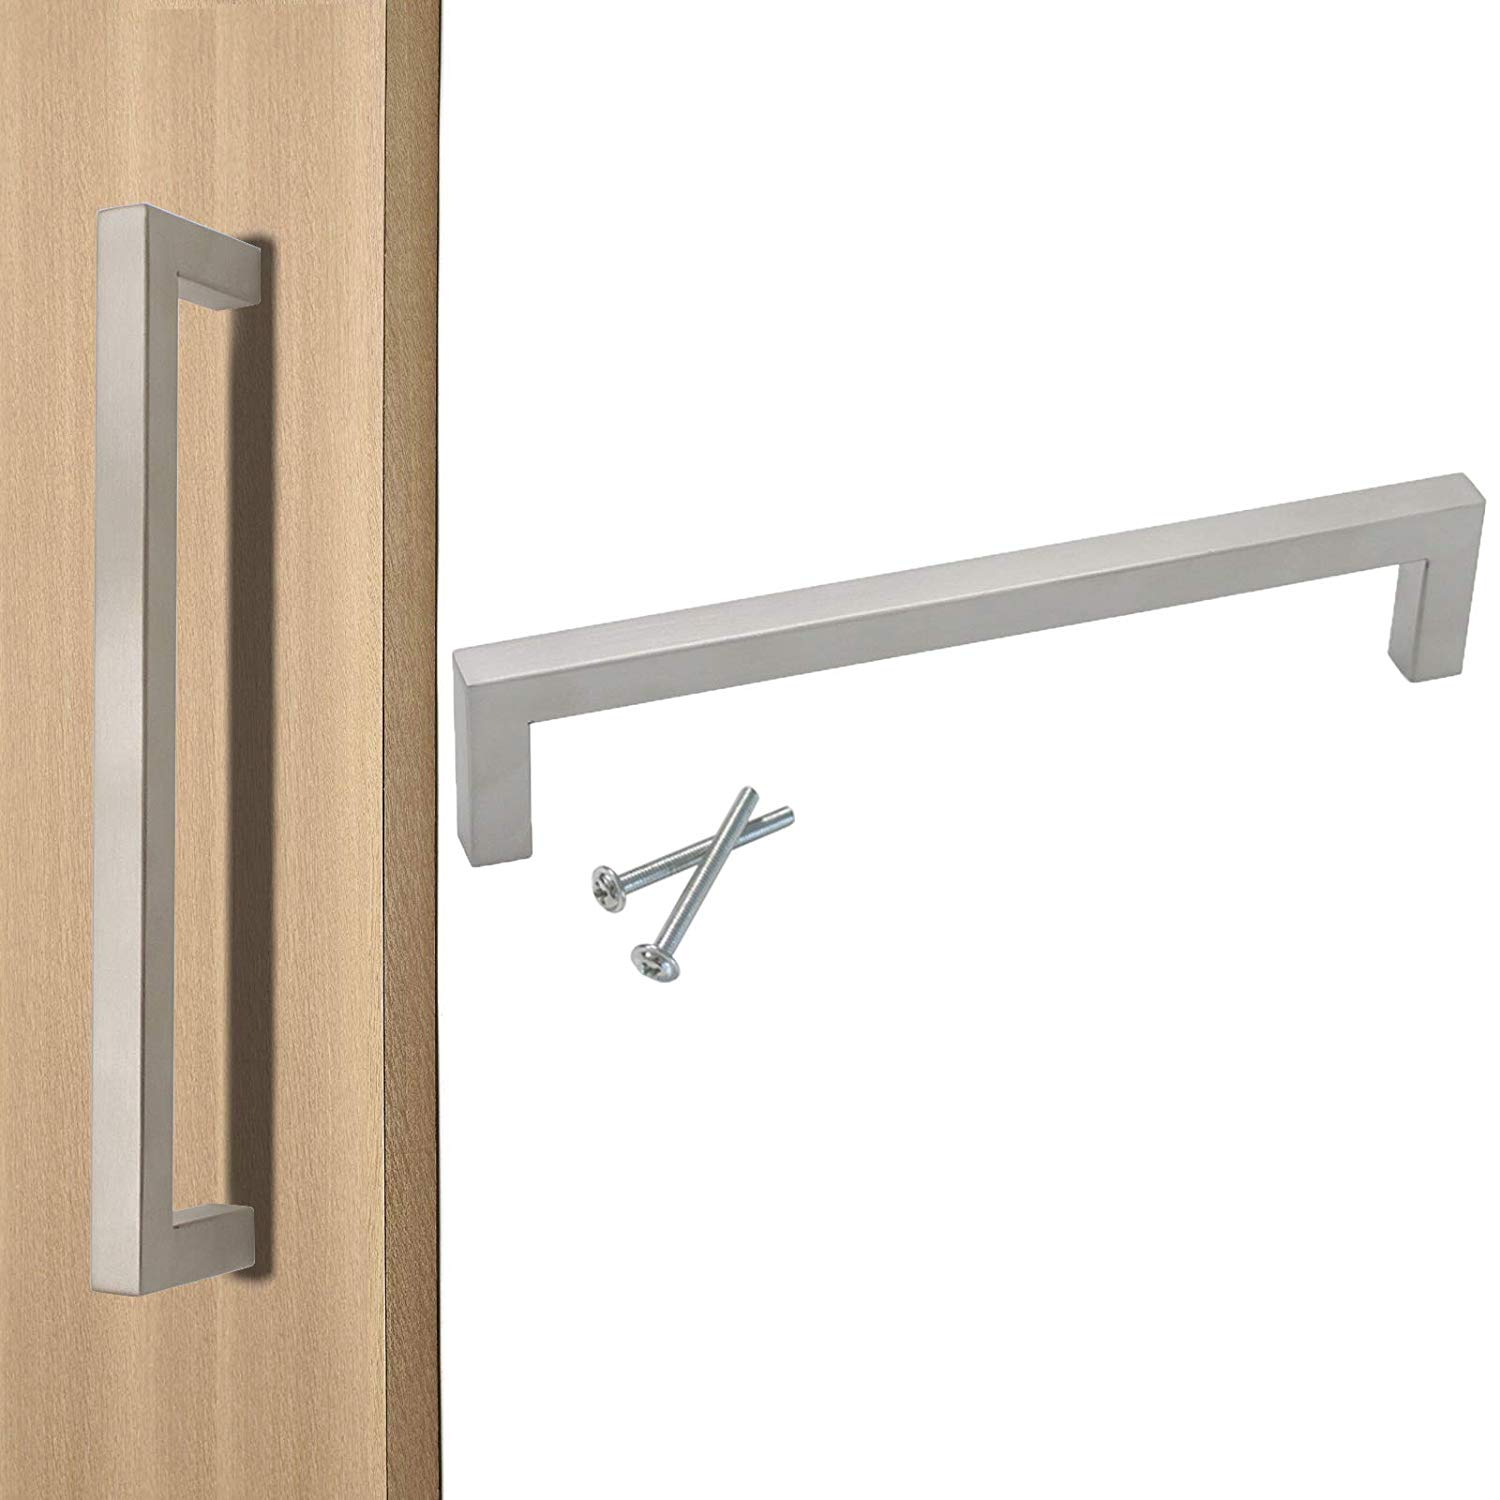 """Probrico 10mm Square Corner Kitchen Cabinet Drawer Pulls 6-1/4"""" Hole Centers Chest Handles in Brushed Nickel, 20 Pack"""